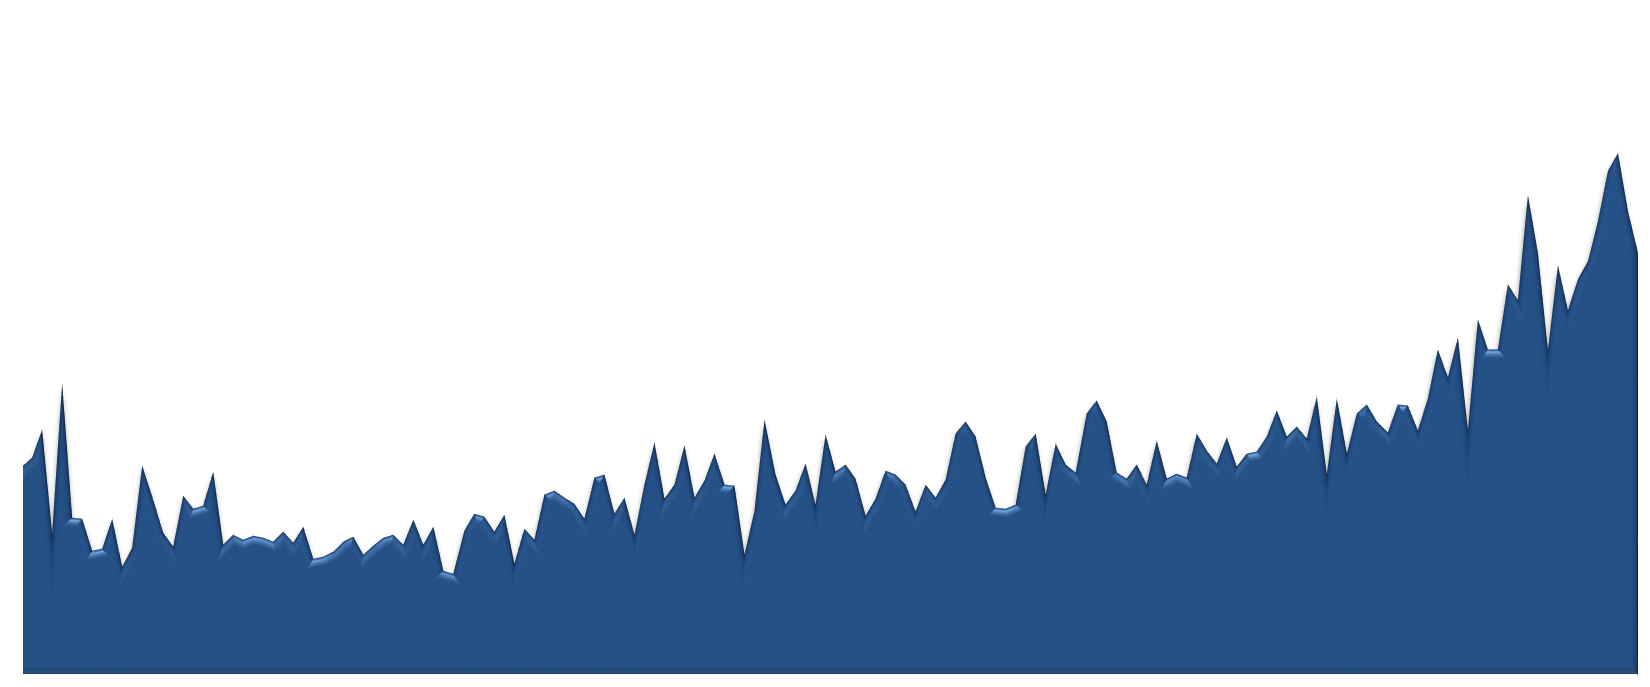 85266 Median Sales Price 2009-2013 Monthly Chart